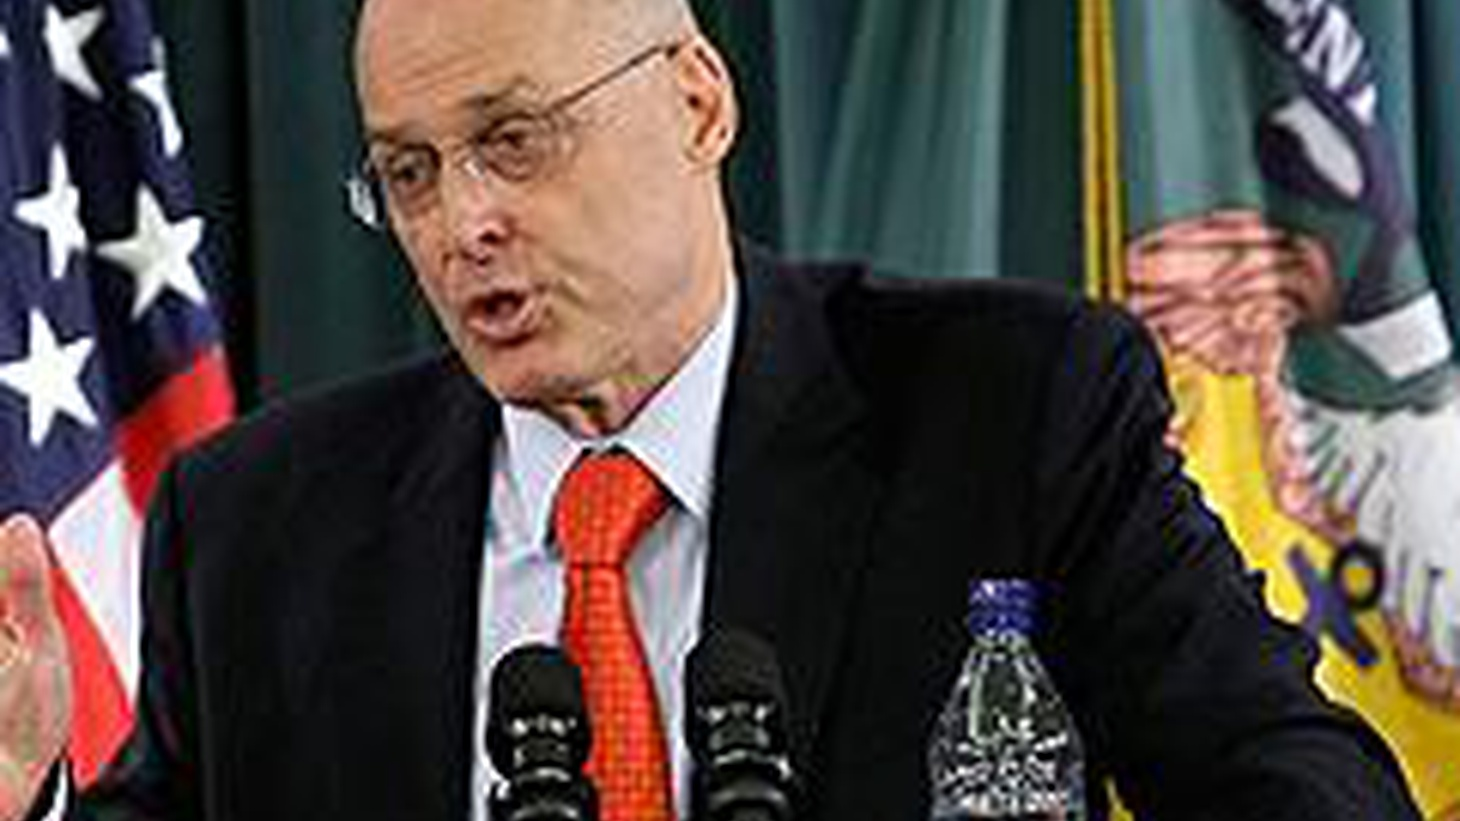 Can Hank Paulson think? Should Hillary take State? Will Palin rise again? Plus, a fight over that big Detroit bailout.